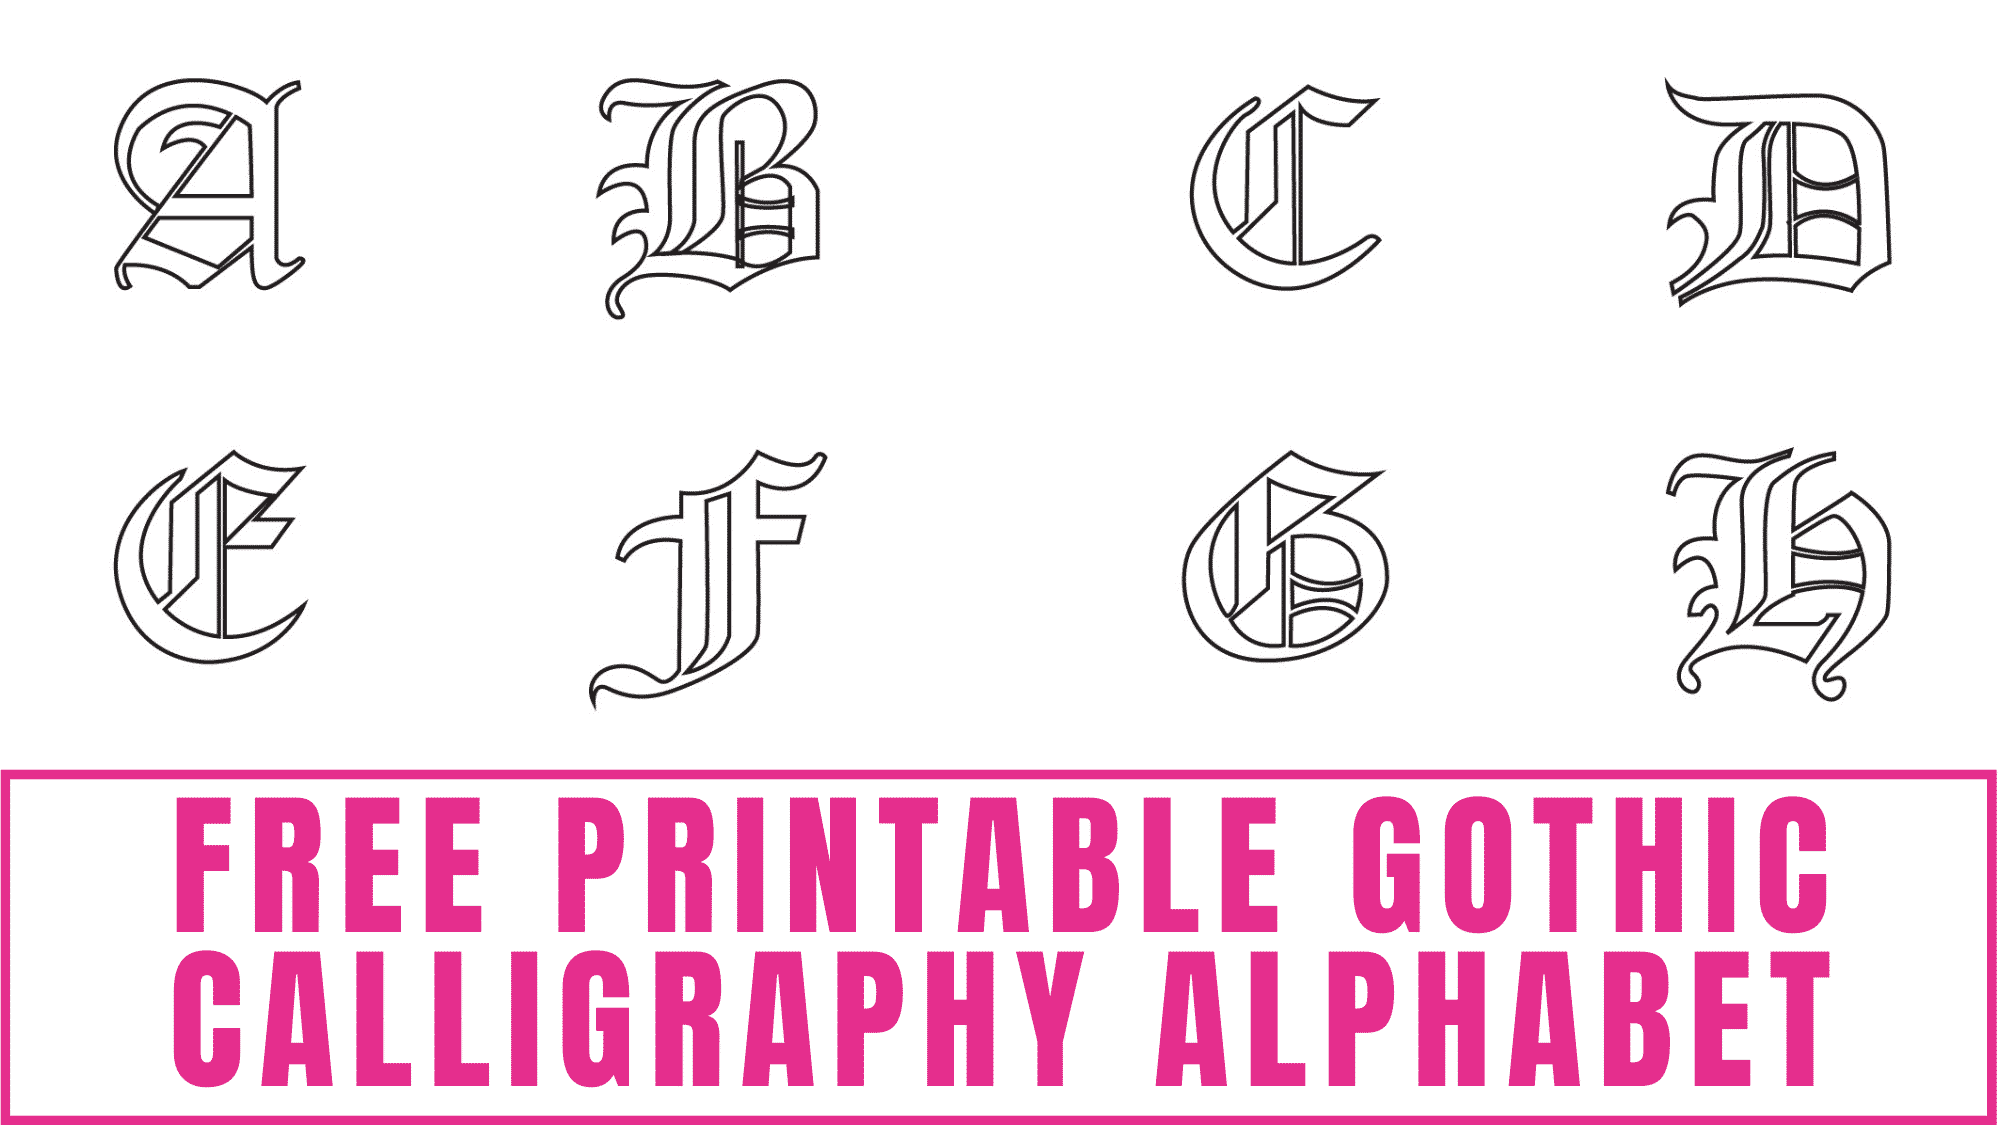 This free printable gothic calligraphy alphabet may not be the best calligraphy font to start with because it is complicated, but after you practice you'll have it down.